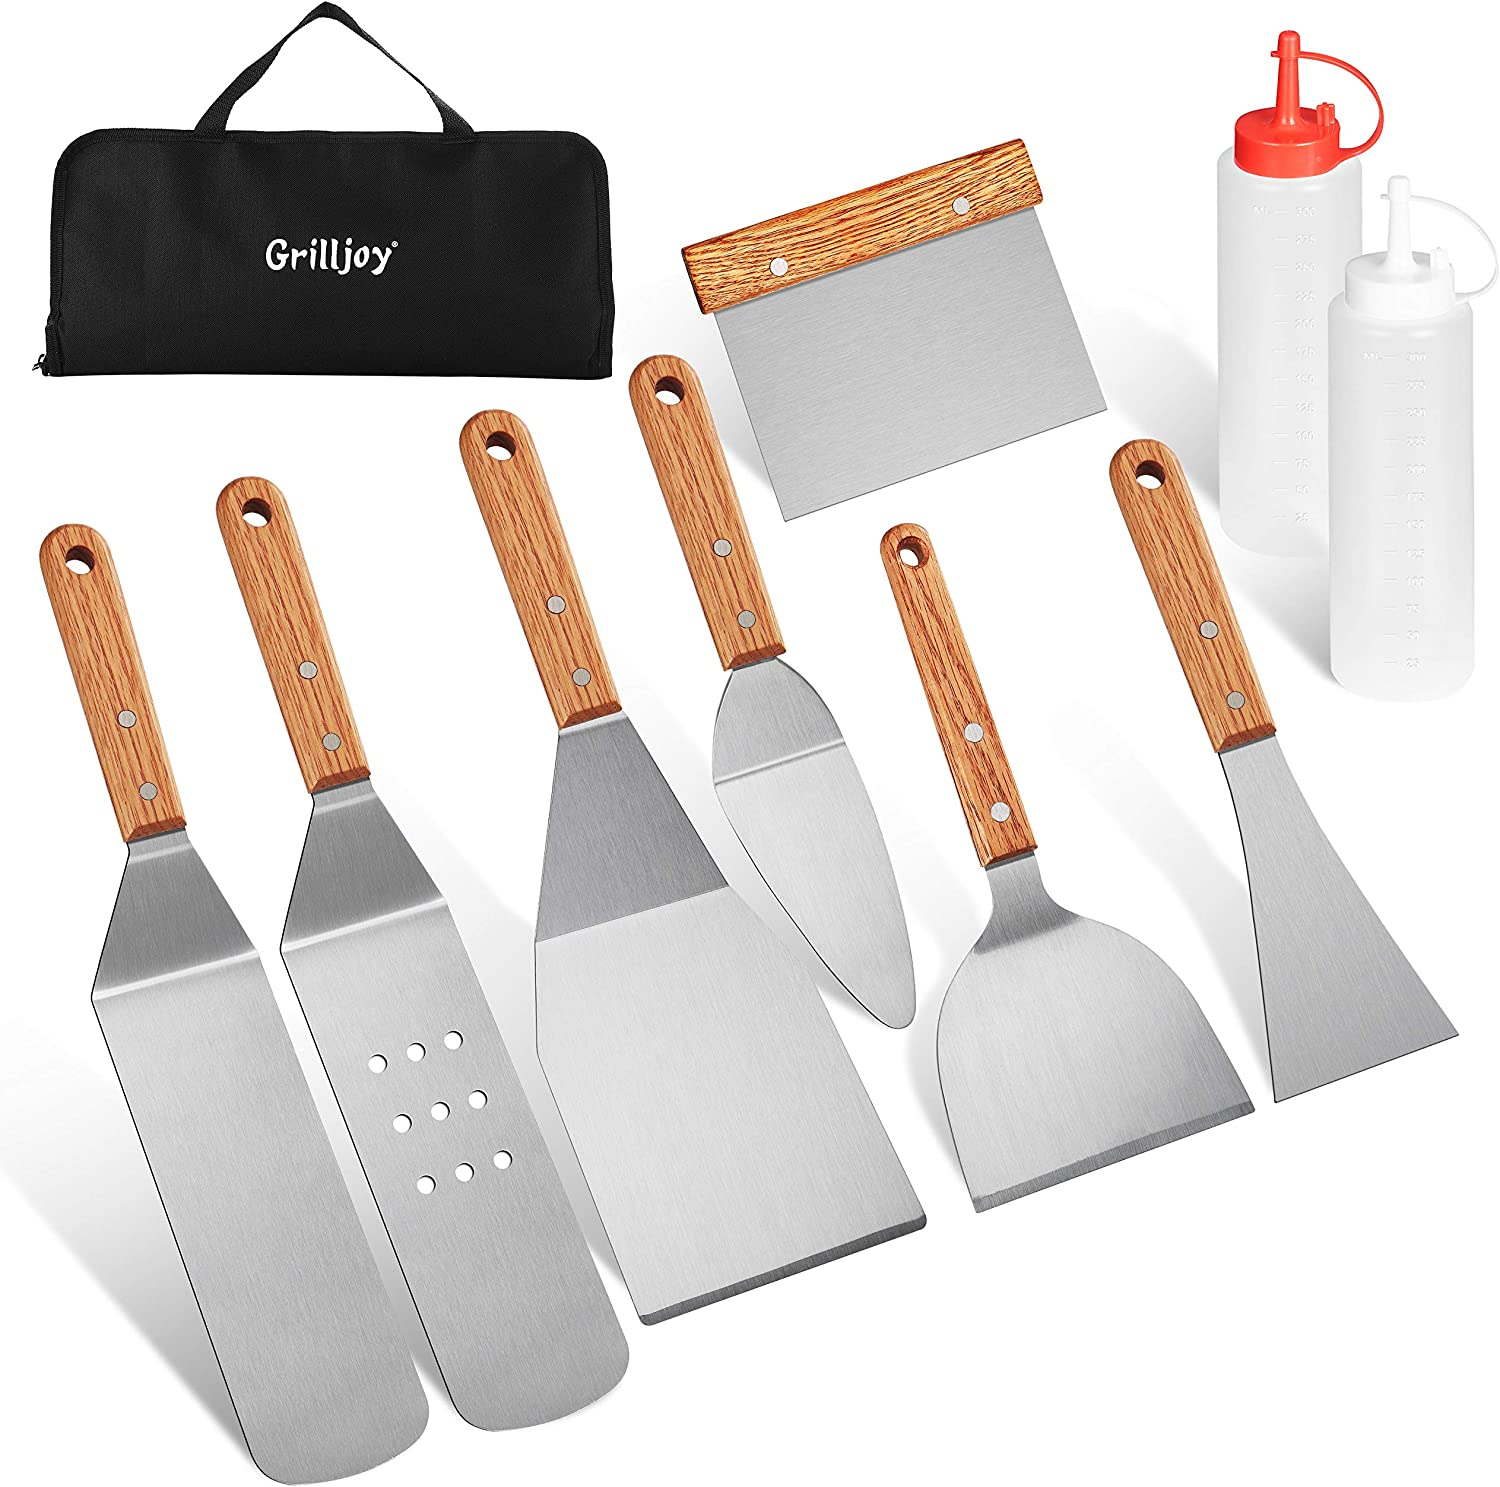 grilljoy 10PC Professional Griddle Spatula Set-Food Grade Stainless Steel Breakfast Kit-Grill Griddle Set for Flat Top Outdoor Cooking - Ideal